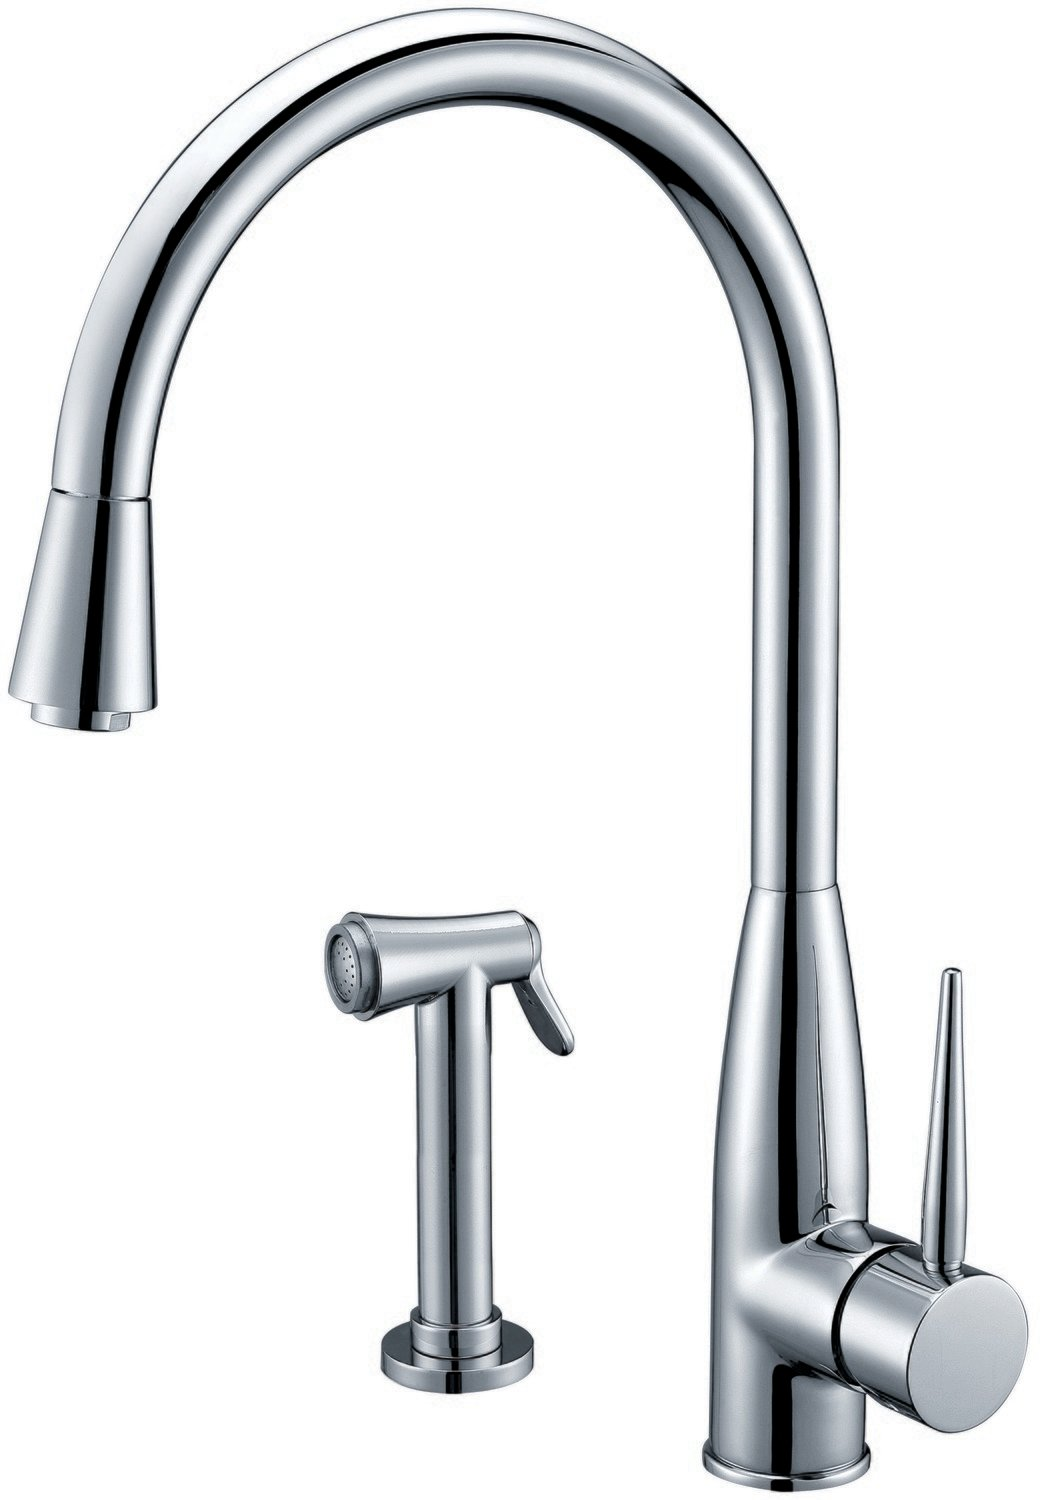 Single-lever sink mixer with side spray